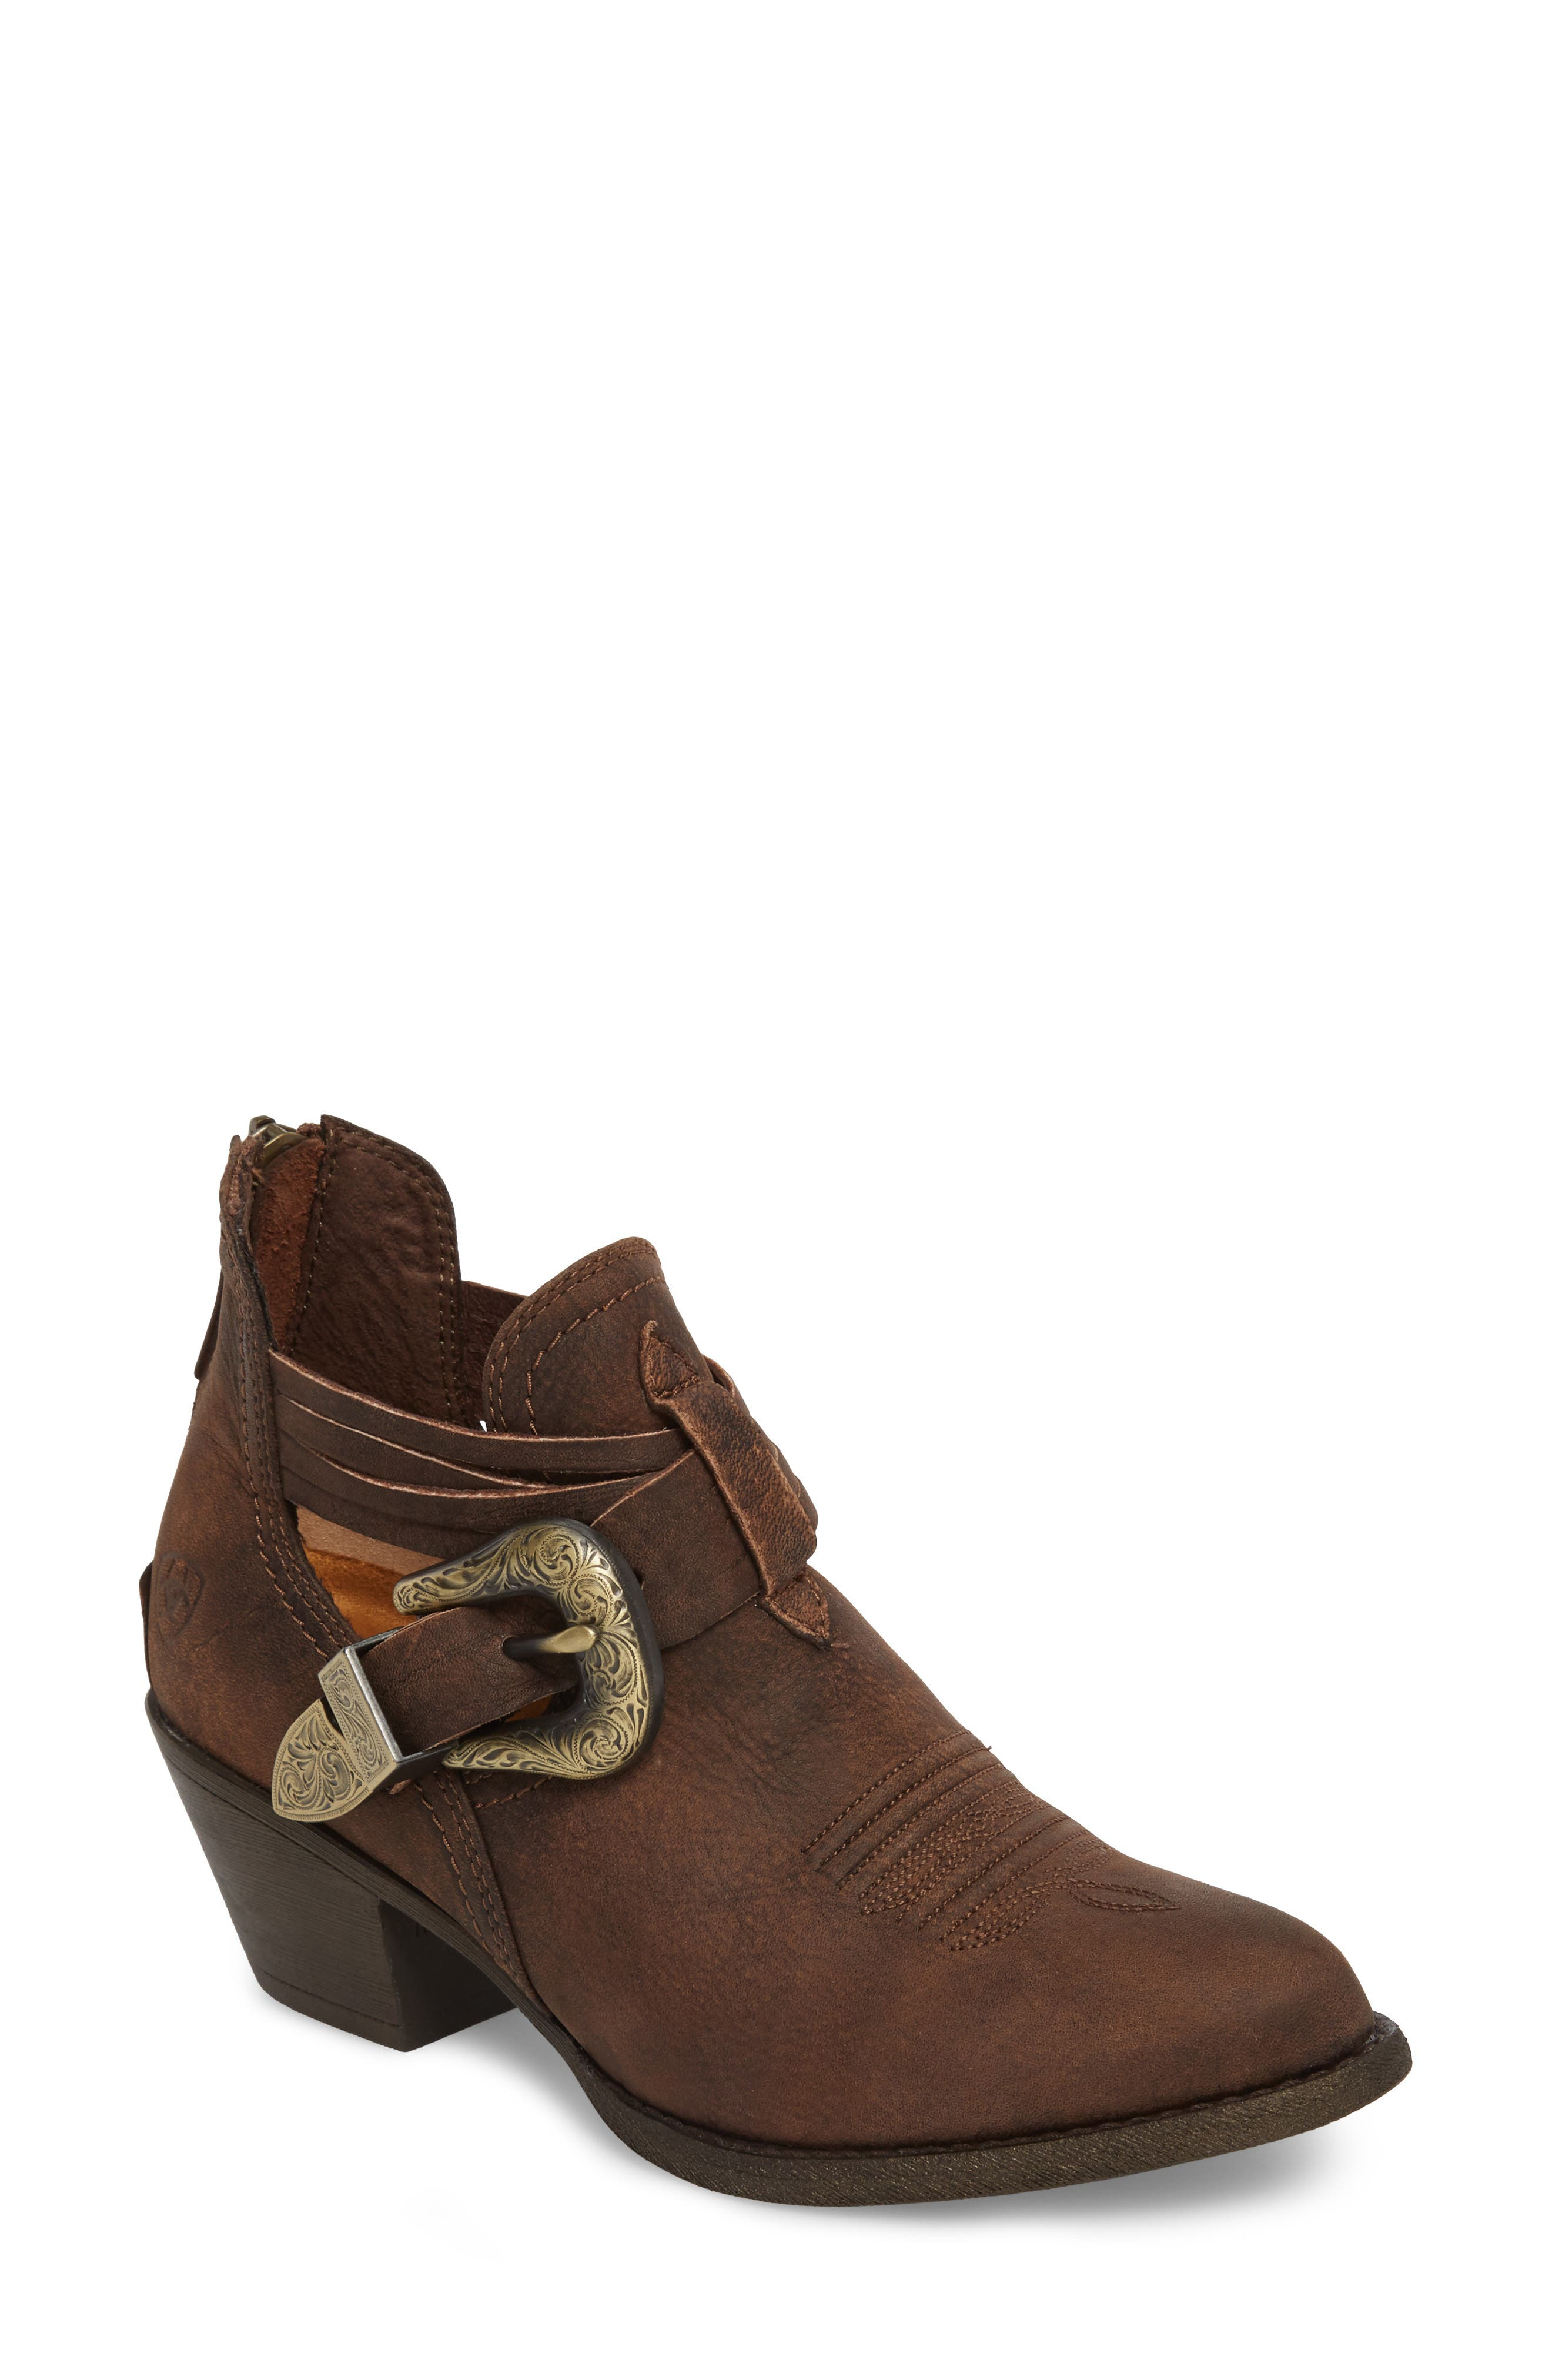 ARIAT Dulce Bootie in Distressed Brown Leather